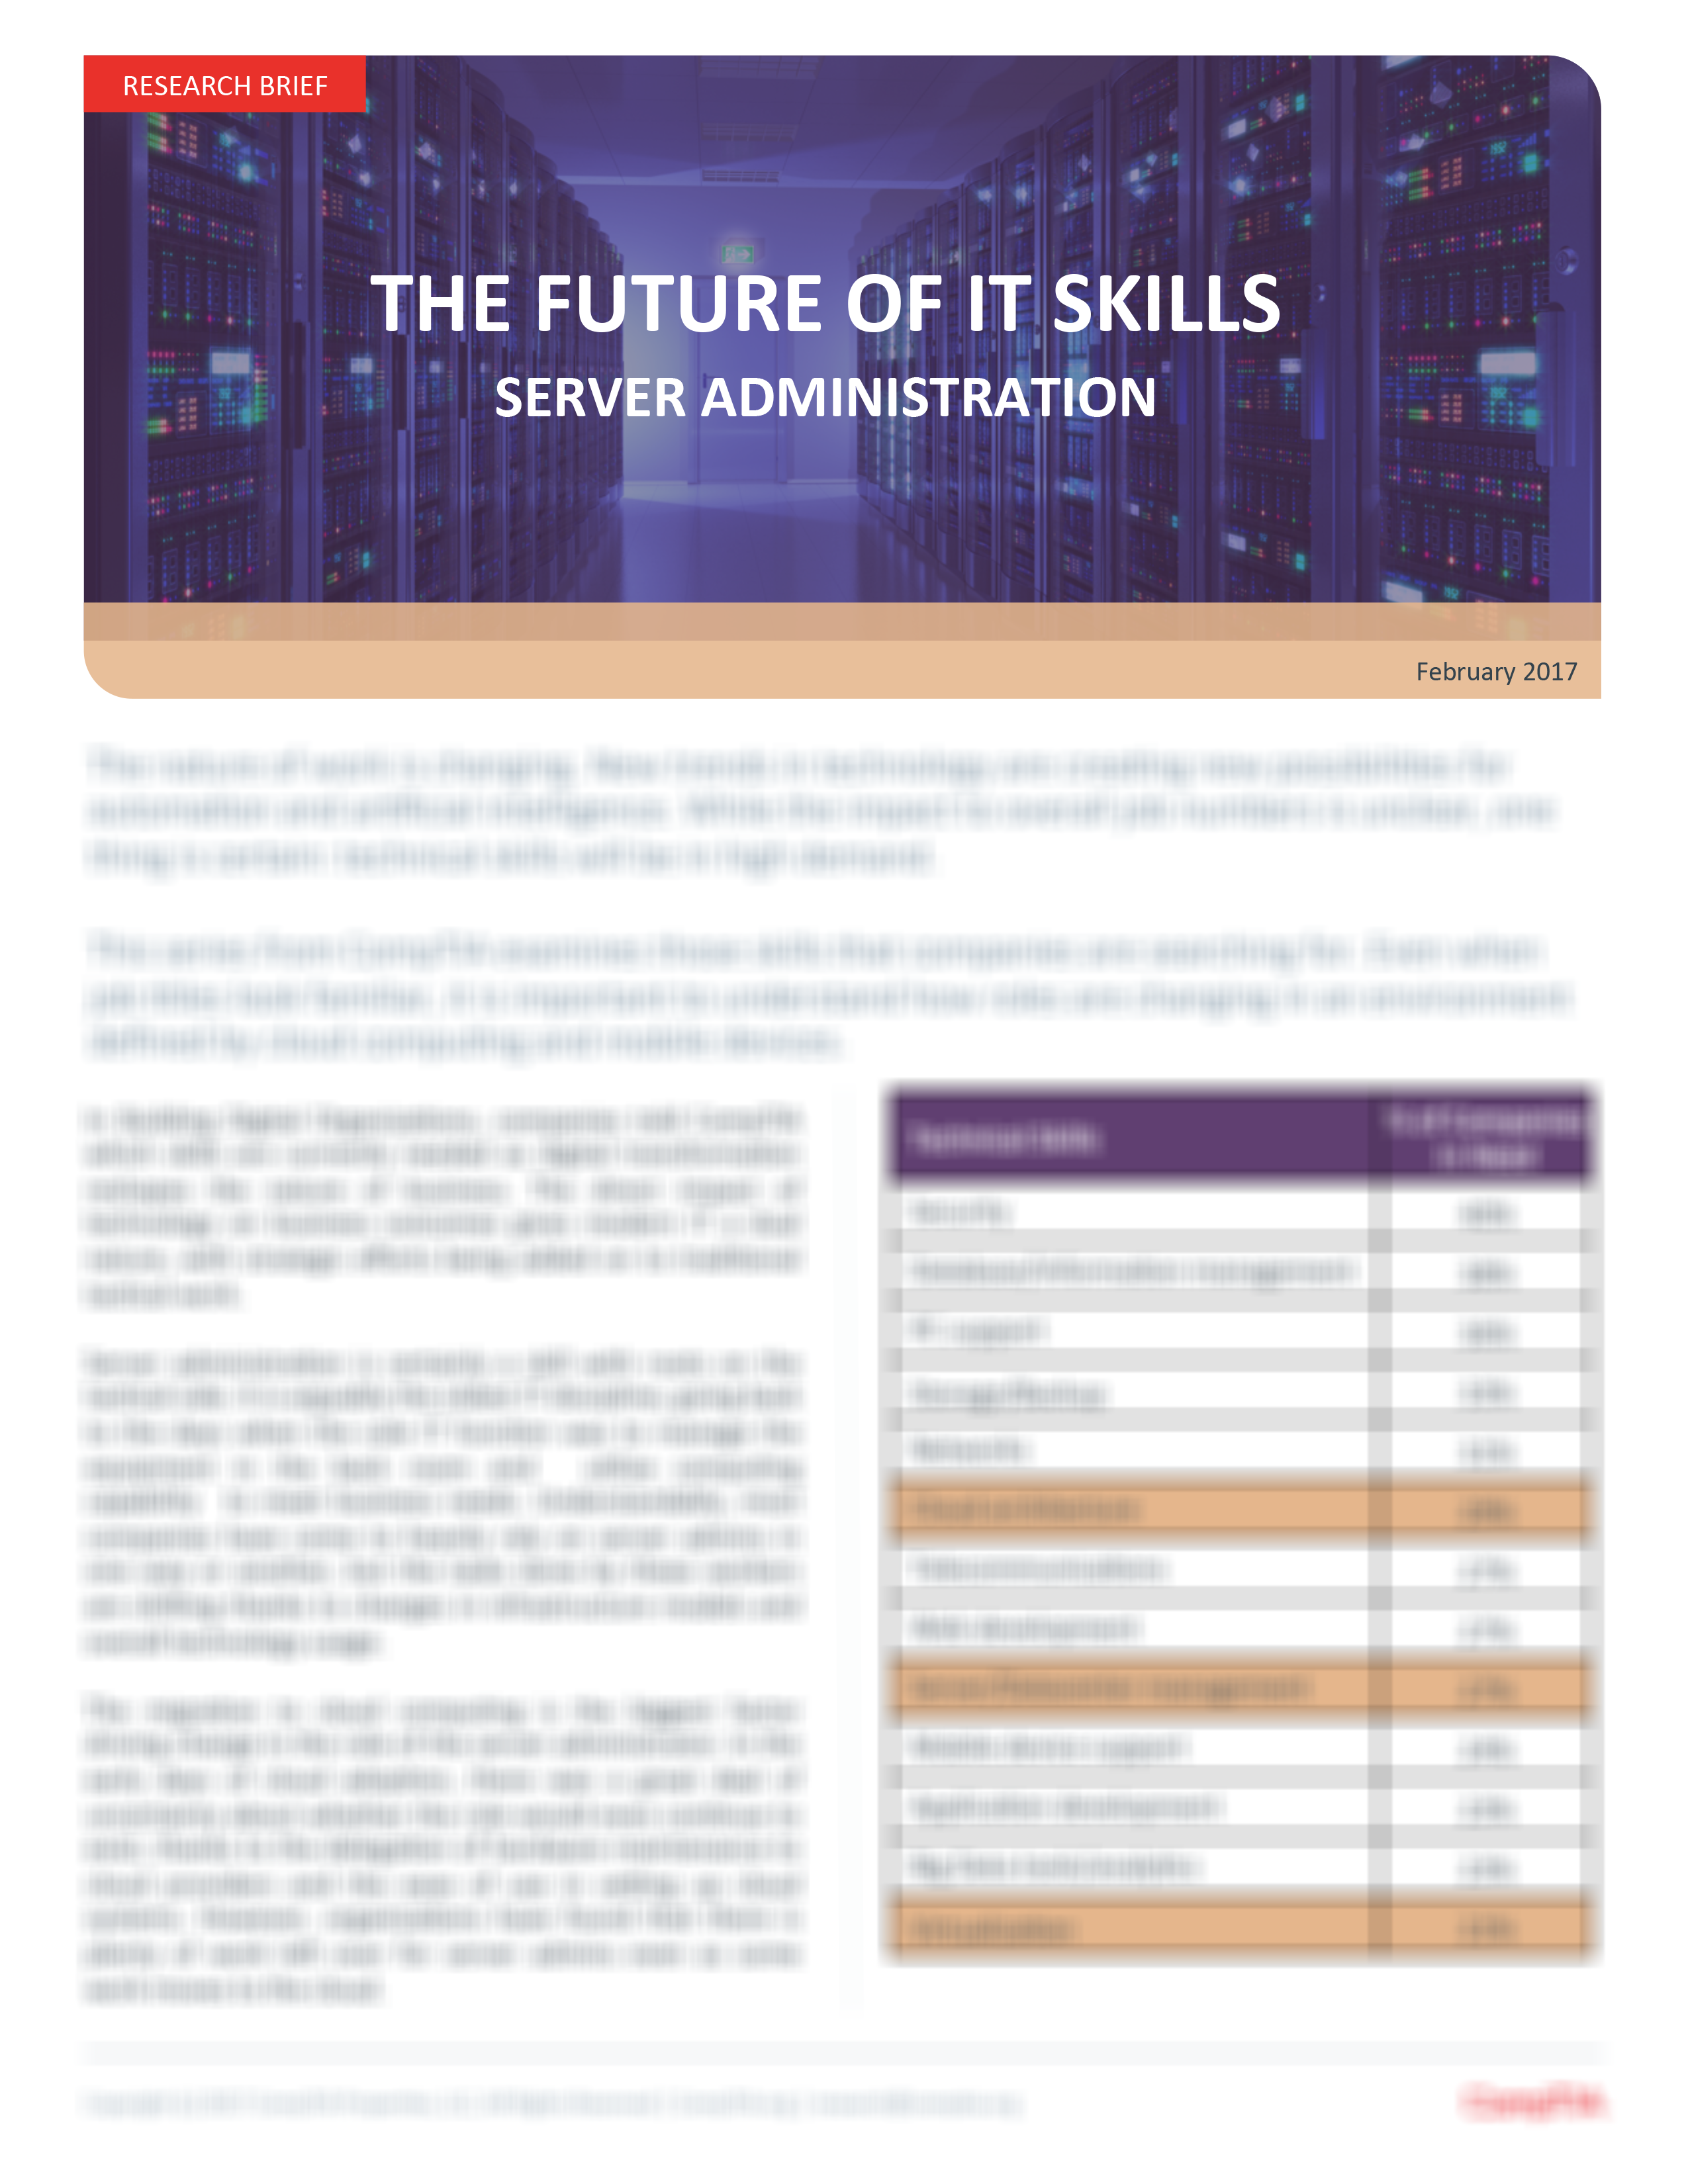 The Future of IT Skills: Server Administration